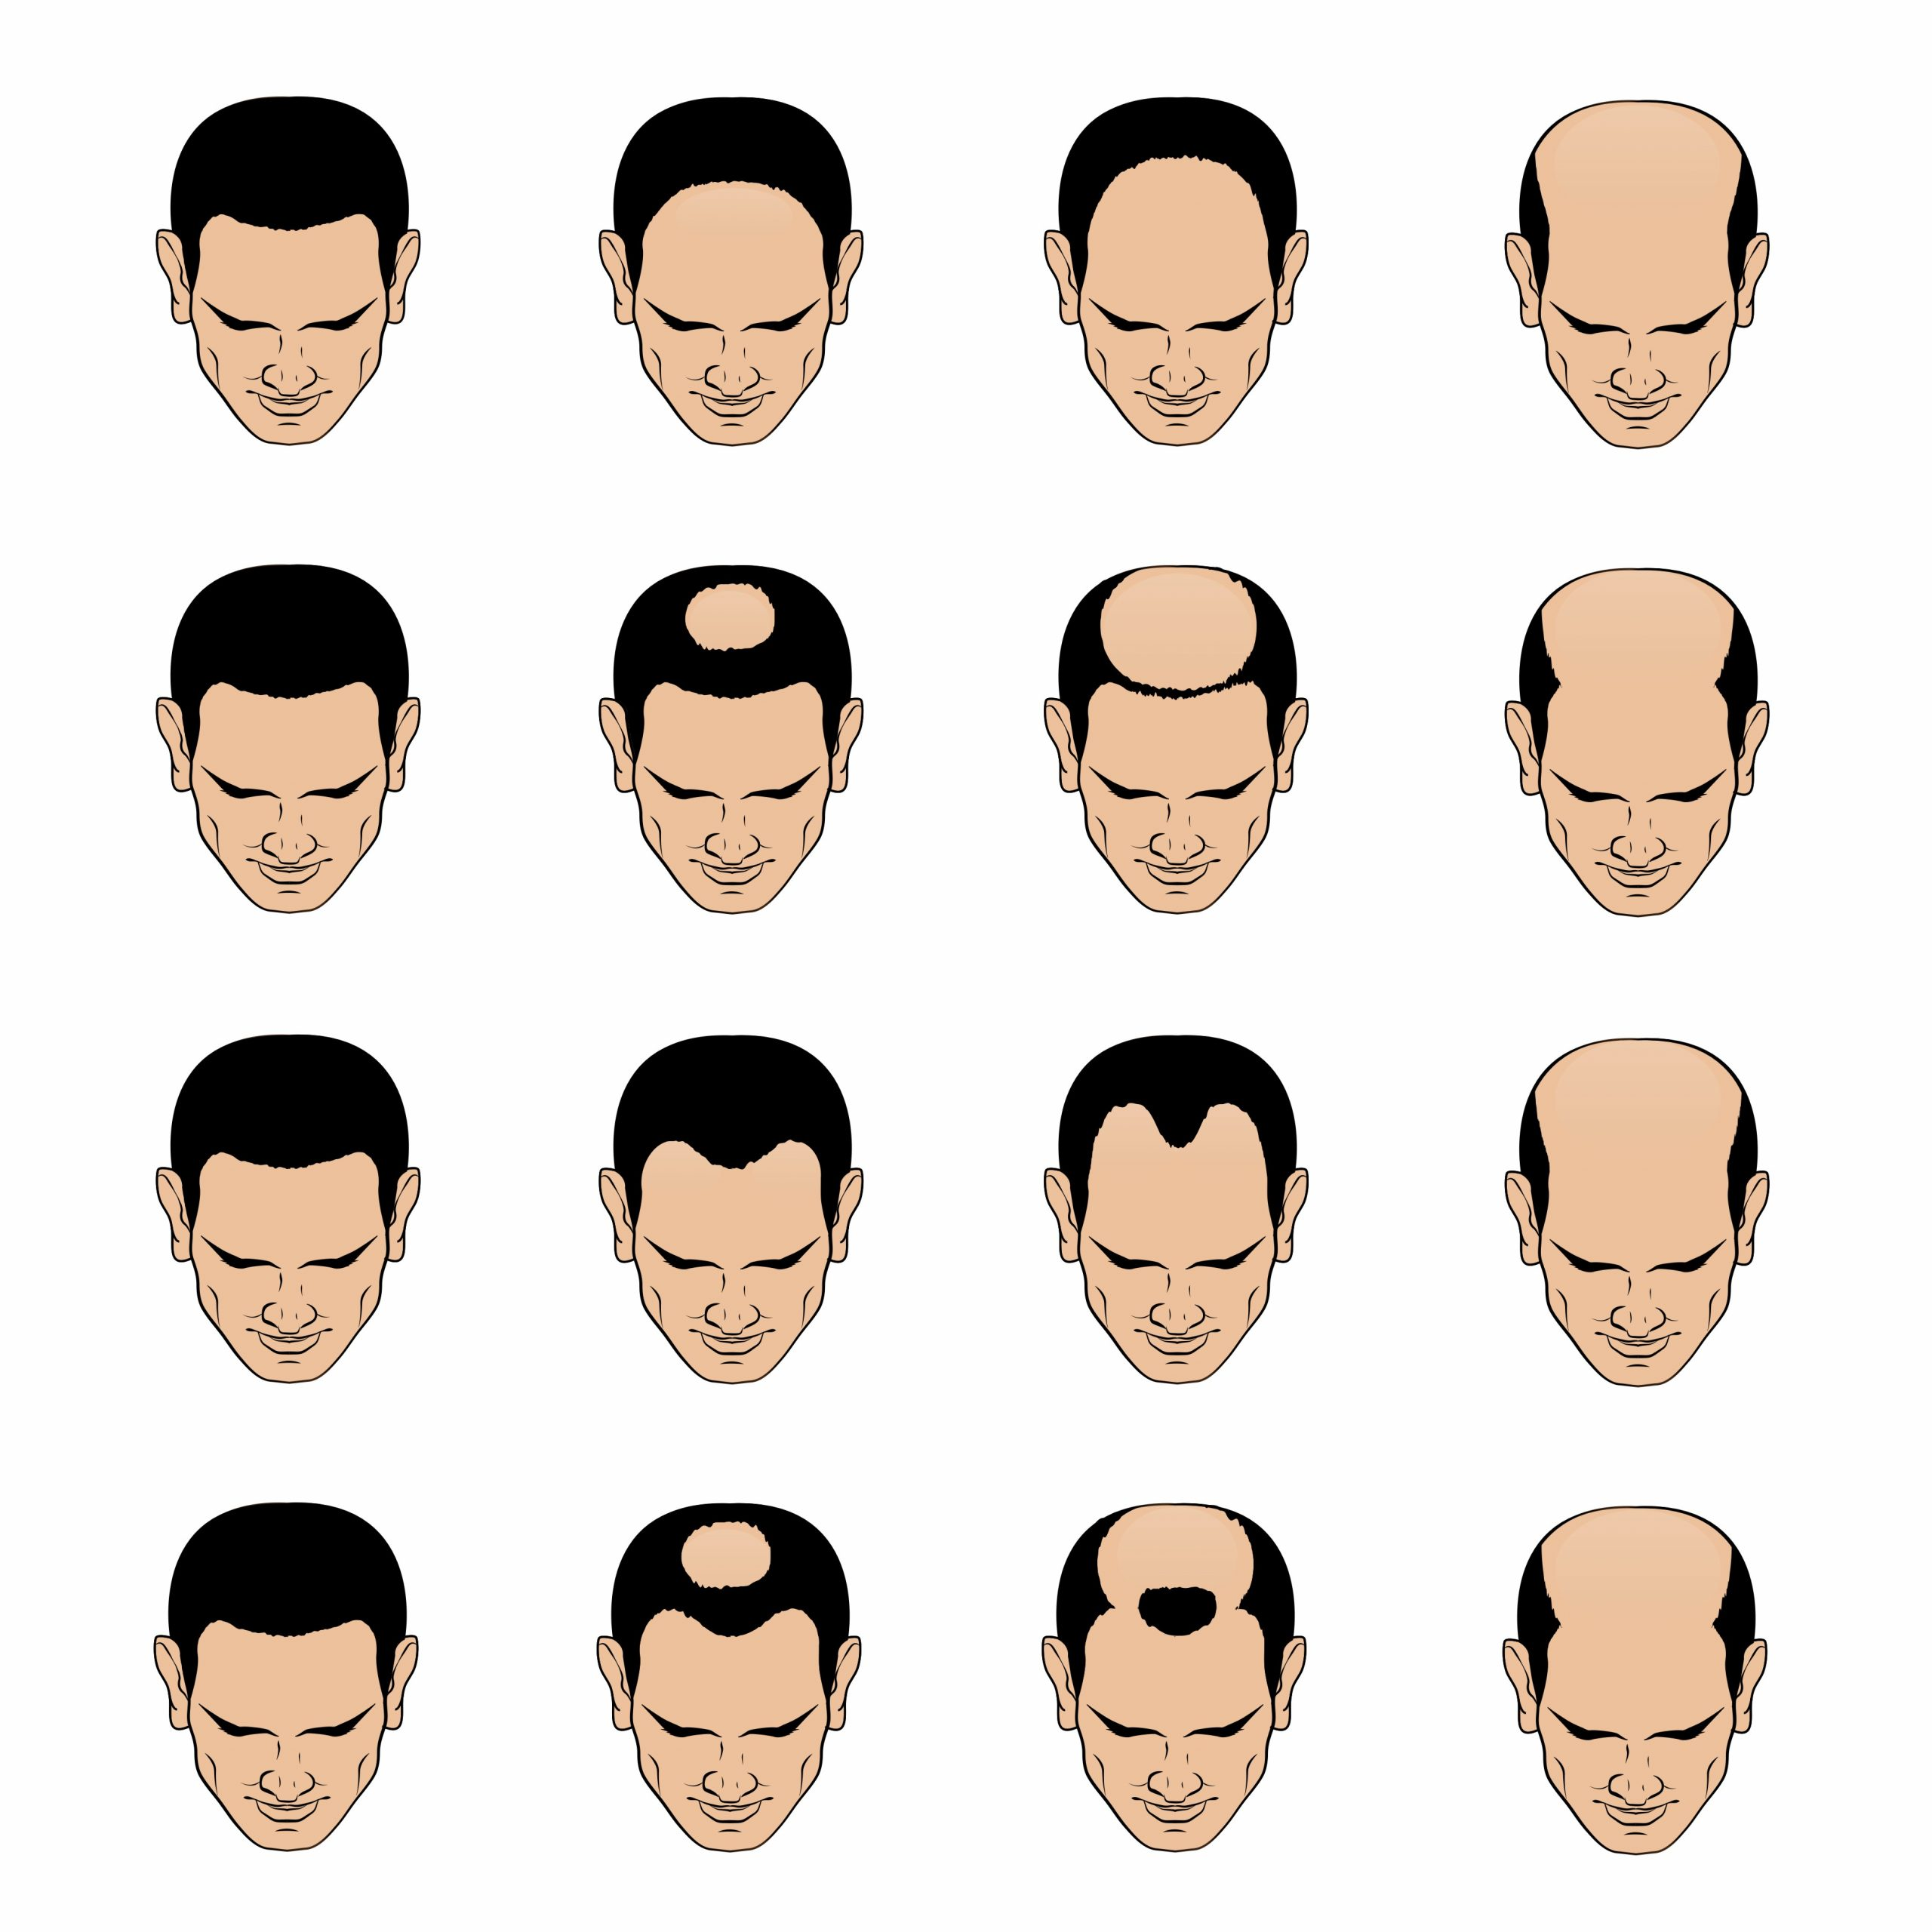 male pattern baldness, androgenetic alopecia, male hair, why do men go bald, how to make your hair thicker